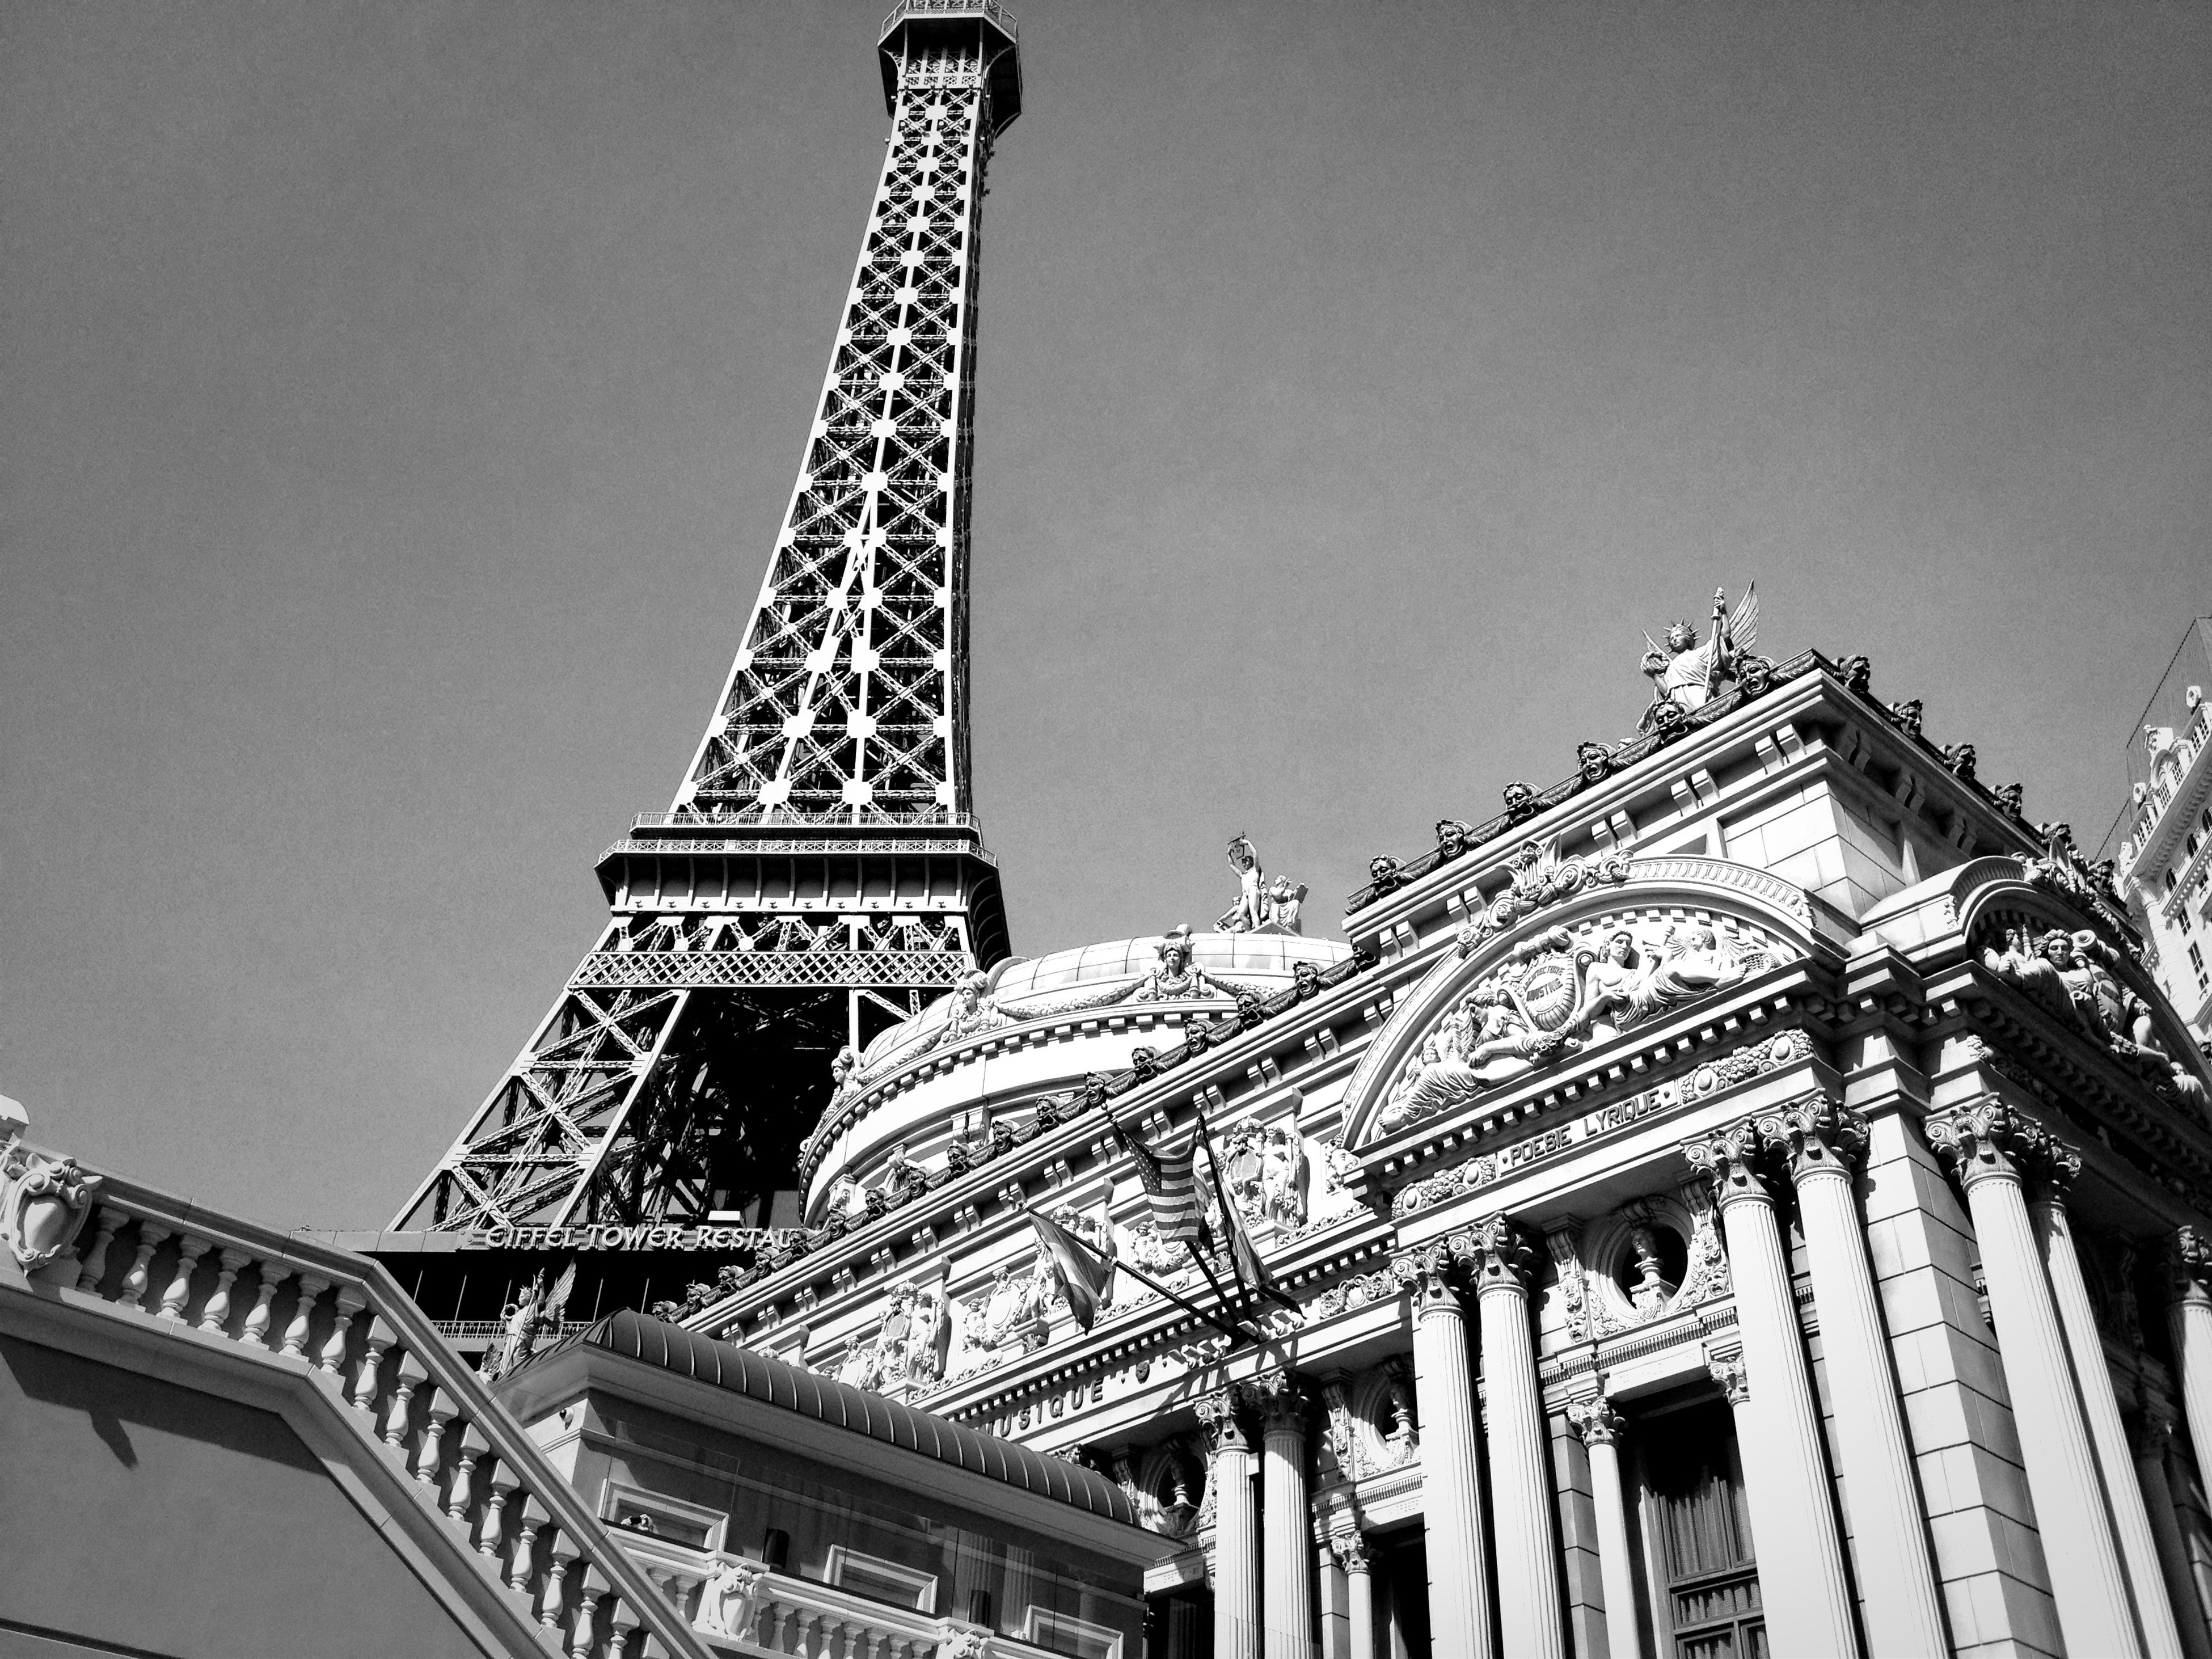 low angle view, architecture, built structure, famous place, clear sky, building exterior, travel destinations, international landmark, history, tourism, travel, capital cities, architectural feature, religion, art and craft, place of worship, tower, culture, art, eiffel tower